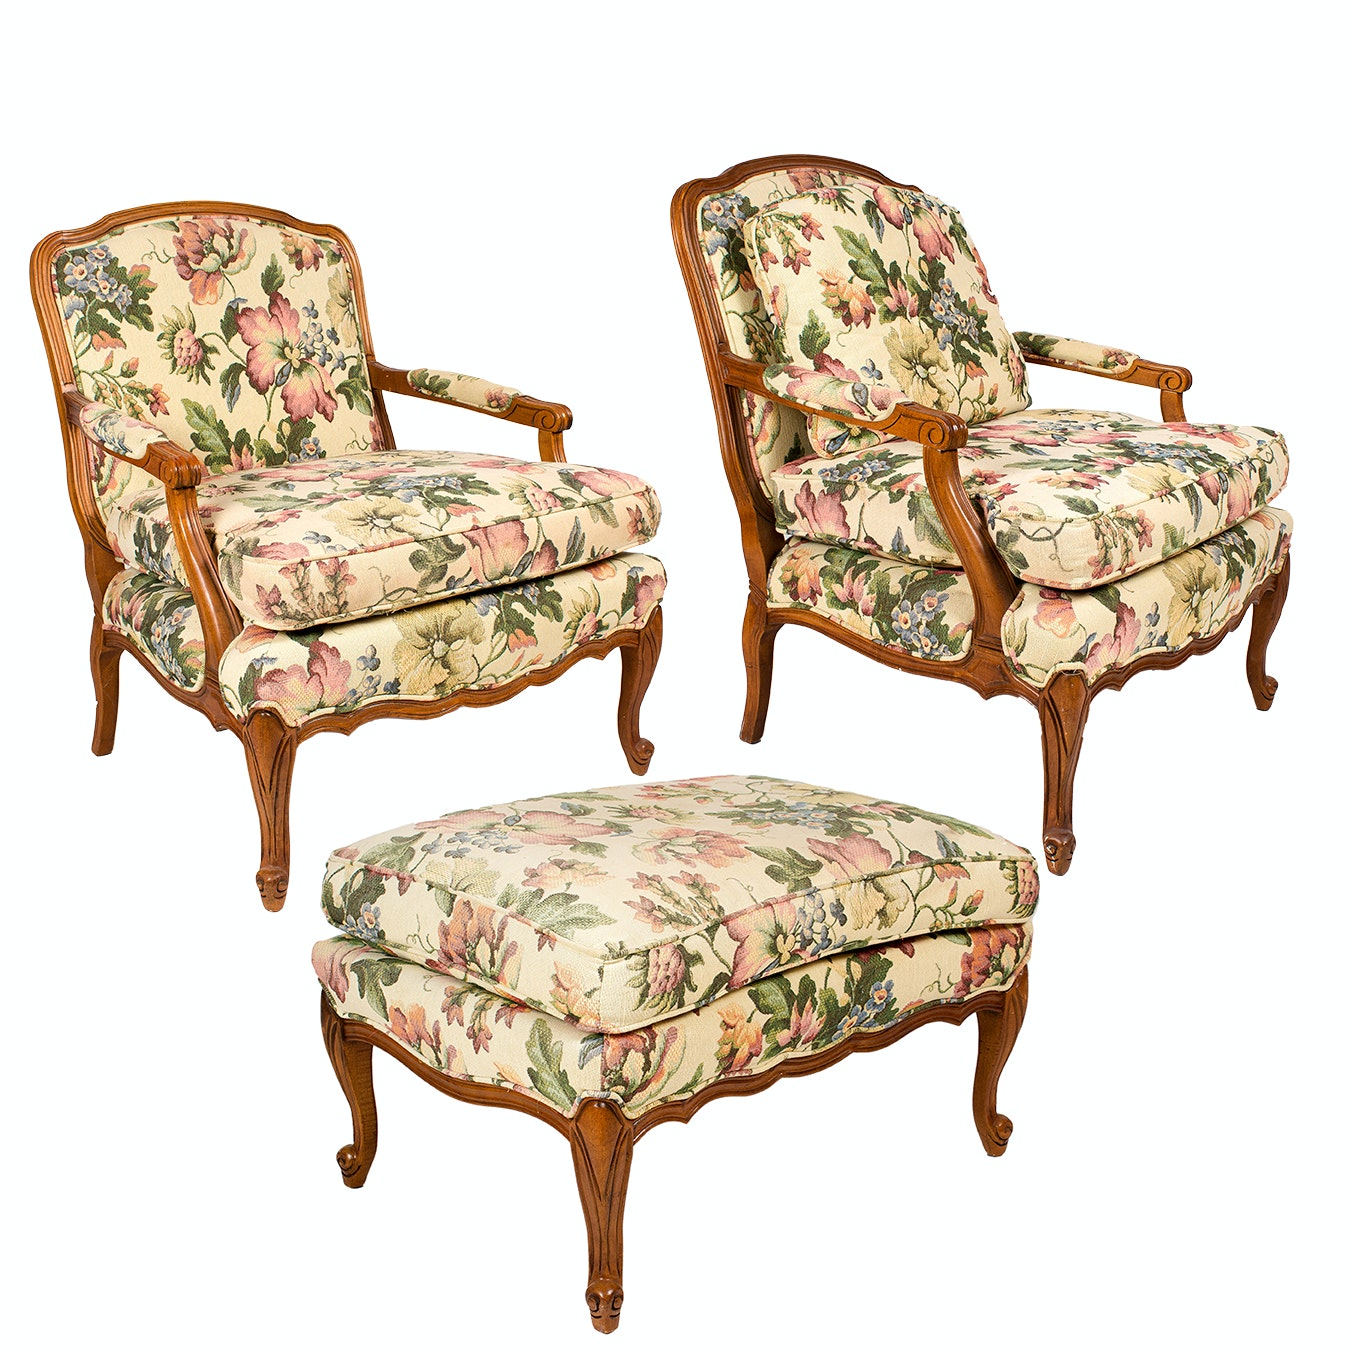 French Provincial Upholstered Armchairs and Ottoman by Sam Moore